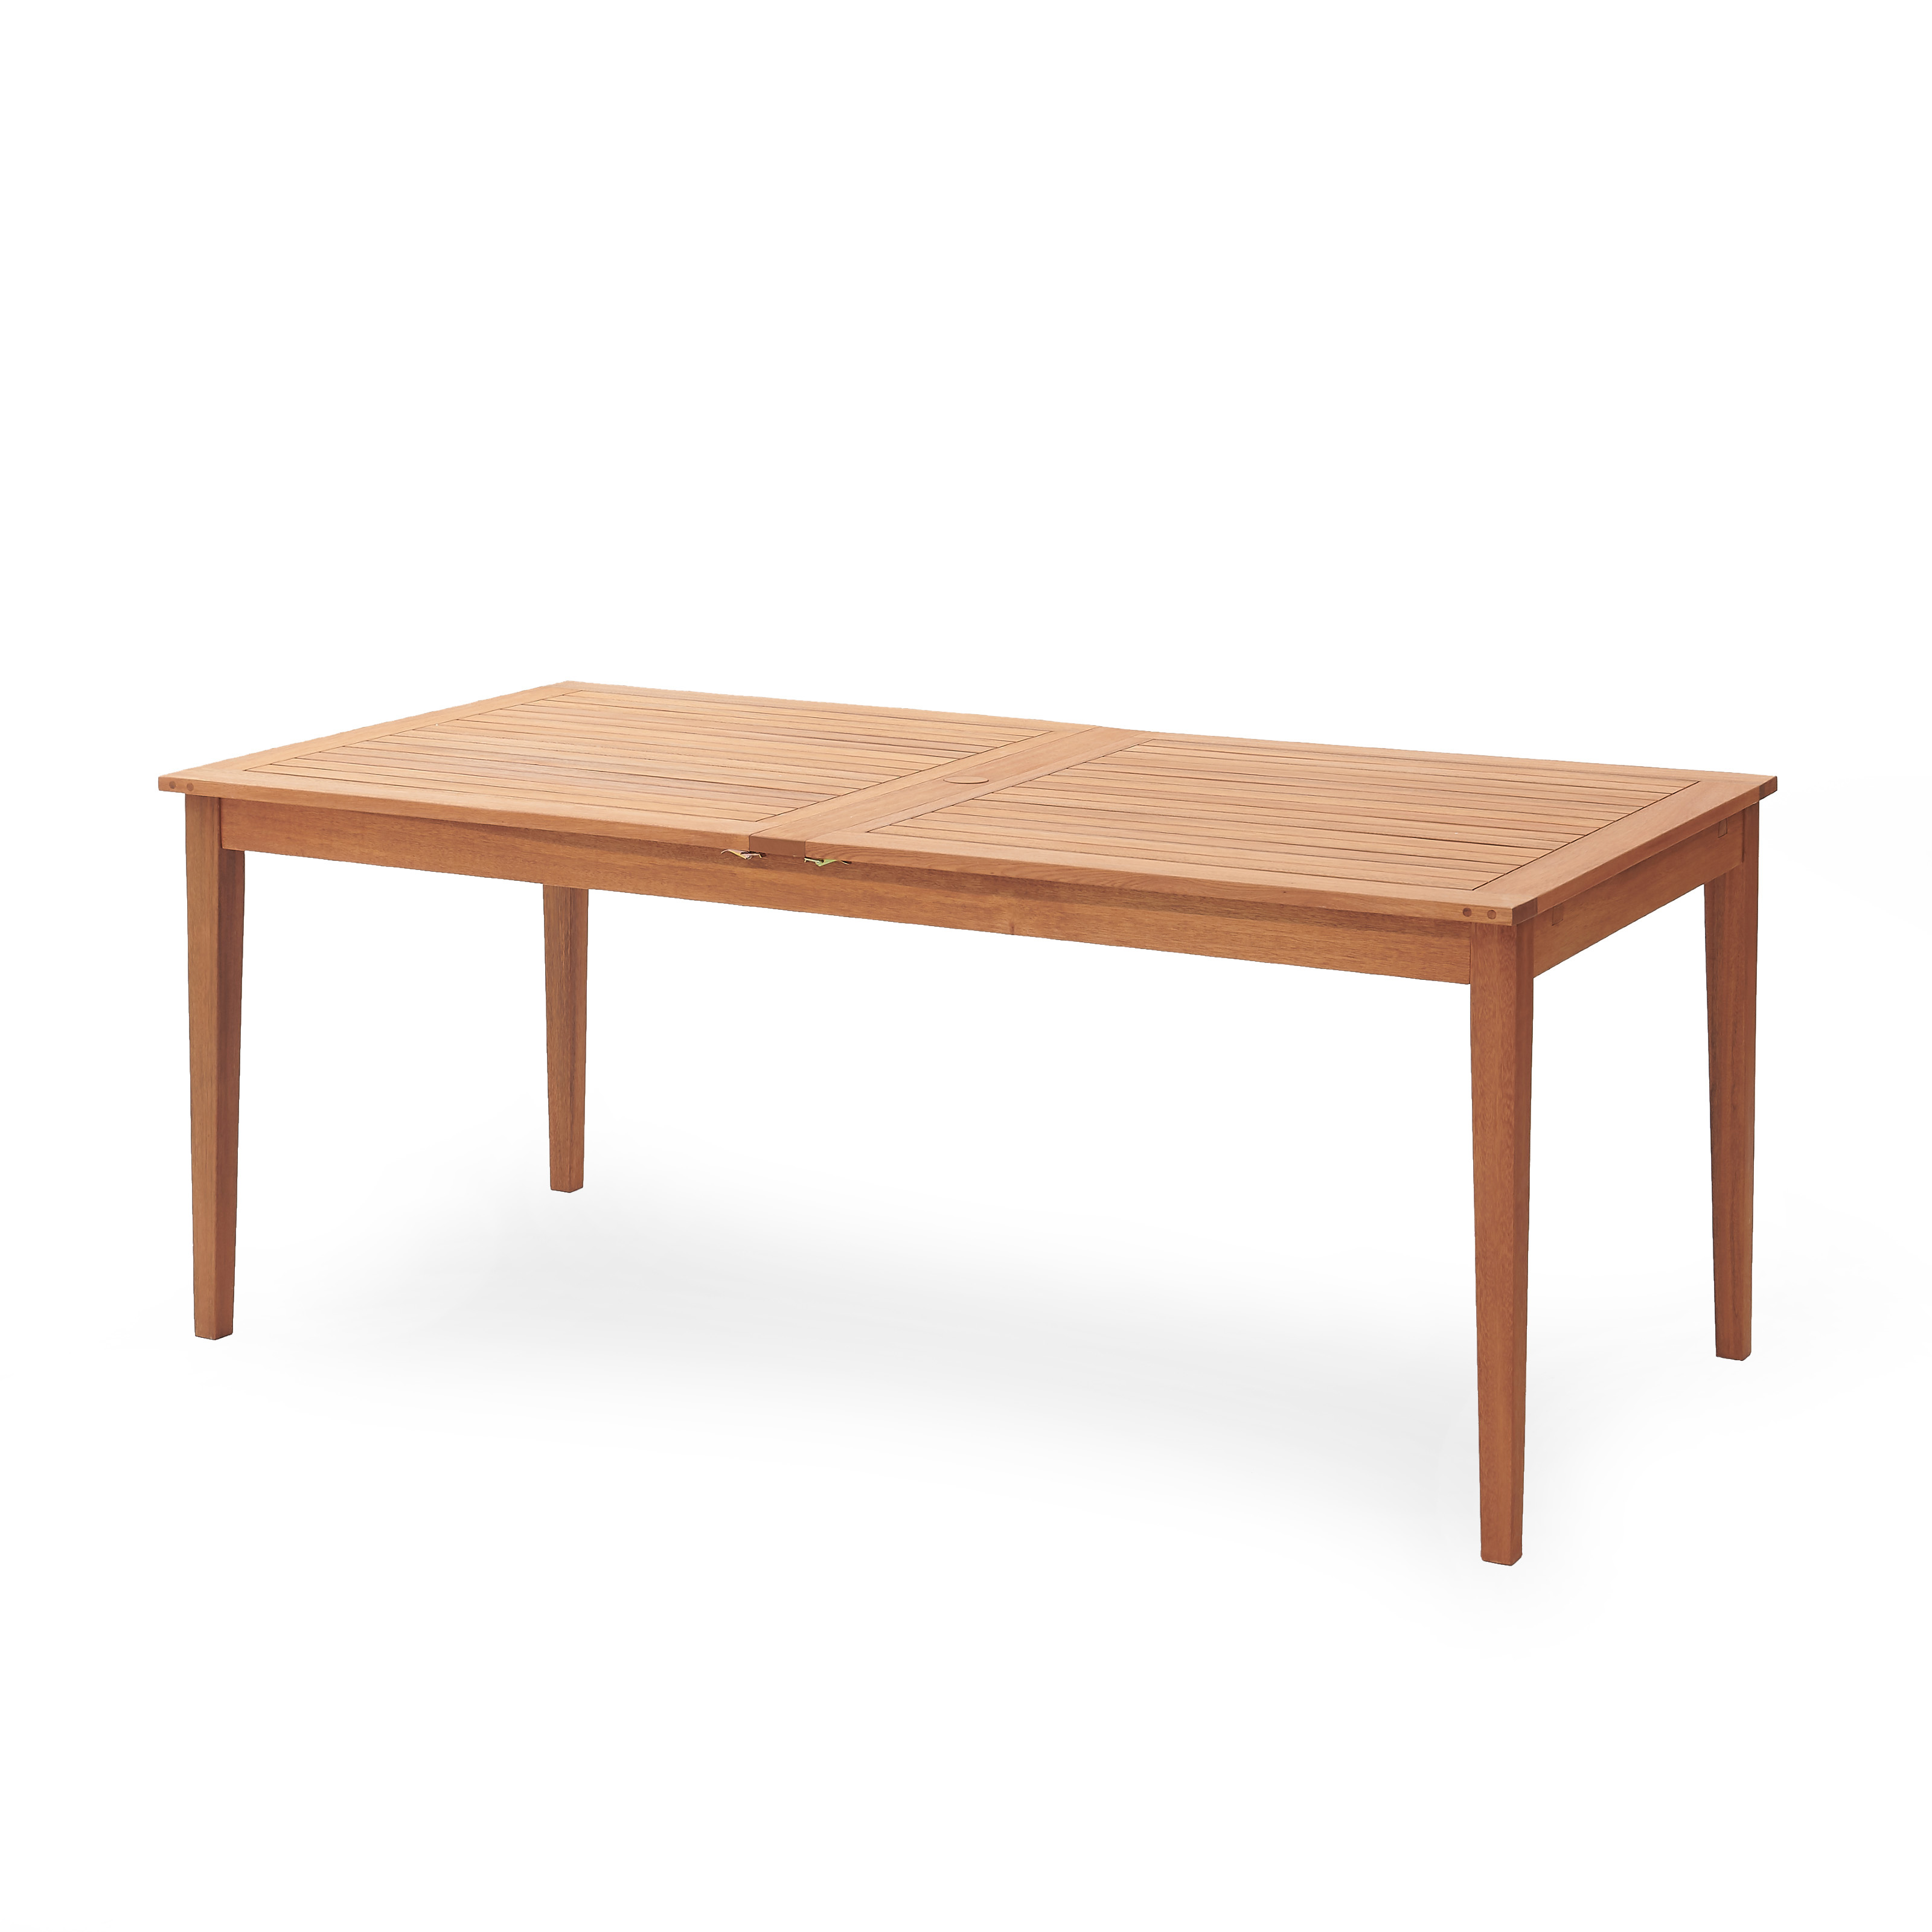 Belham Living Brighton Extension Outdoor Dining Table Natural